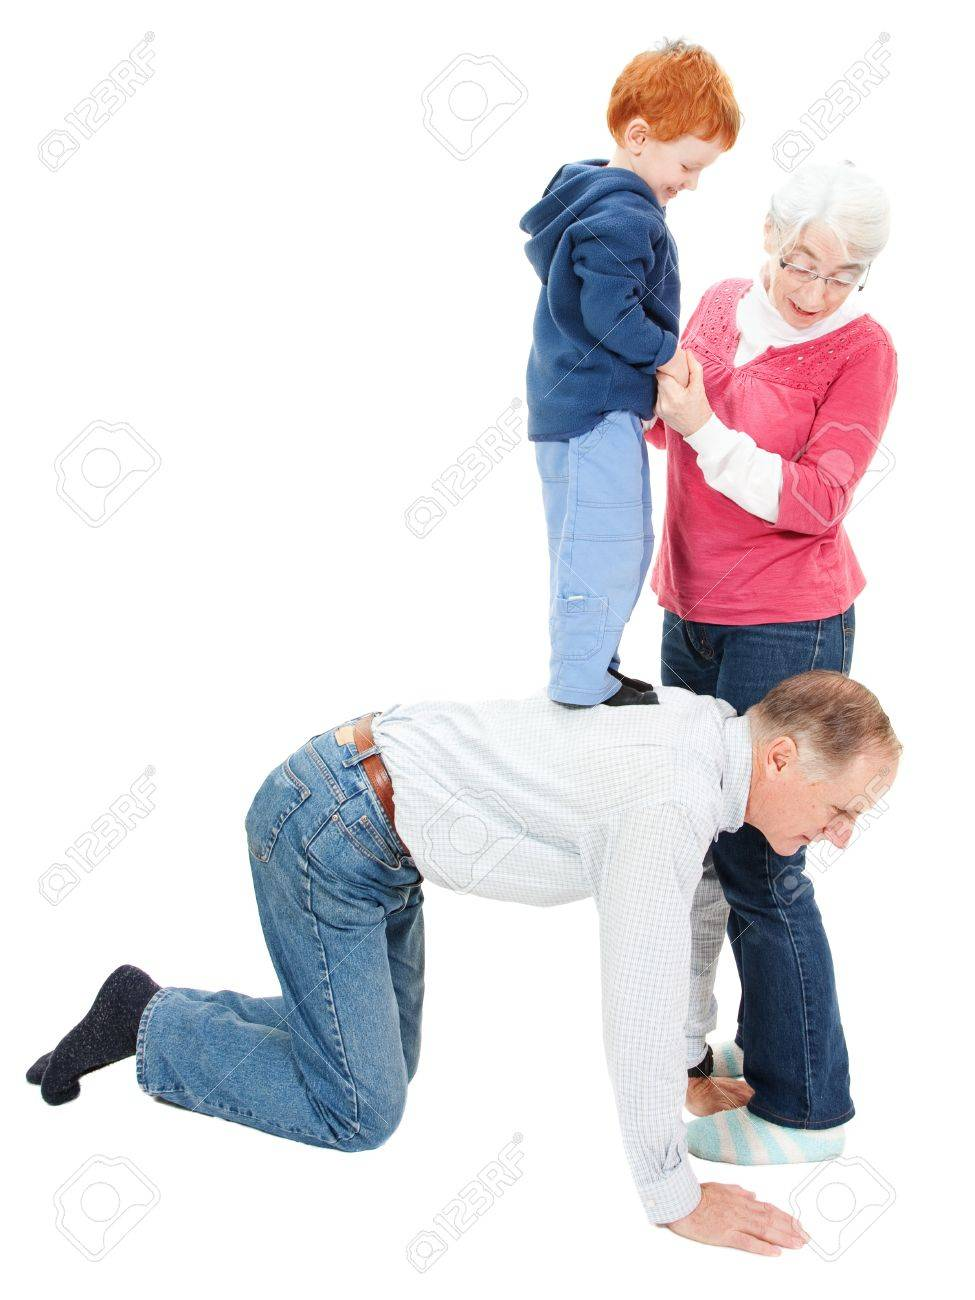 Grandmother and grandfather having fun playing with boy grandchild. Isolated on white. - 10656680